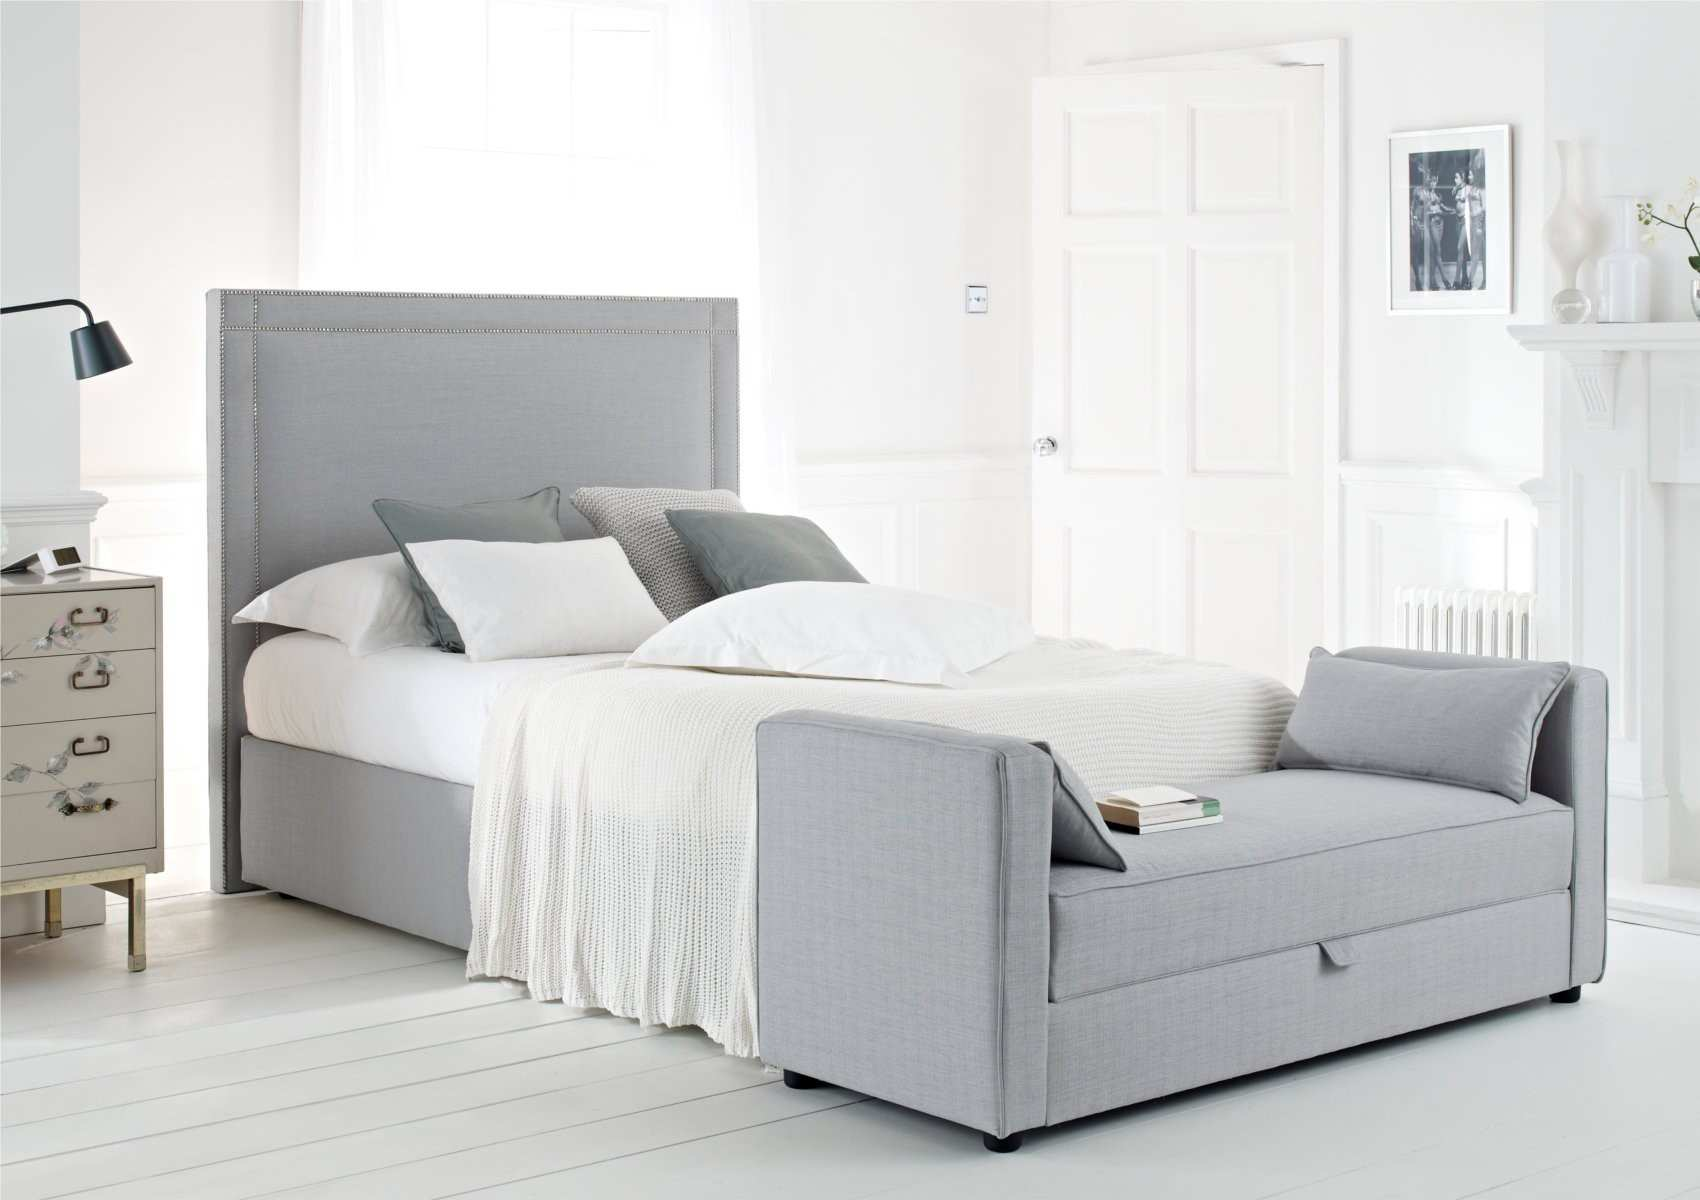 Bedroom Cheap Bed Frames Awesome Stompa Uno S Plus Single Chair